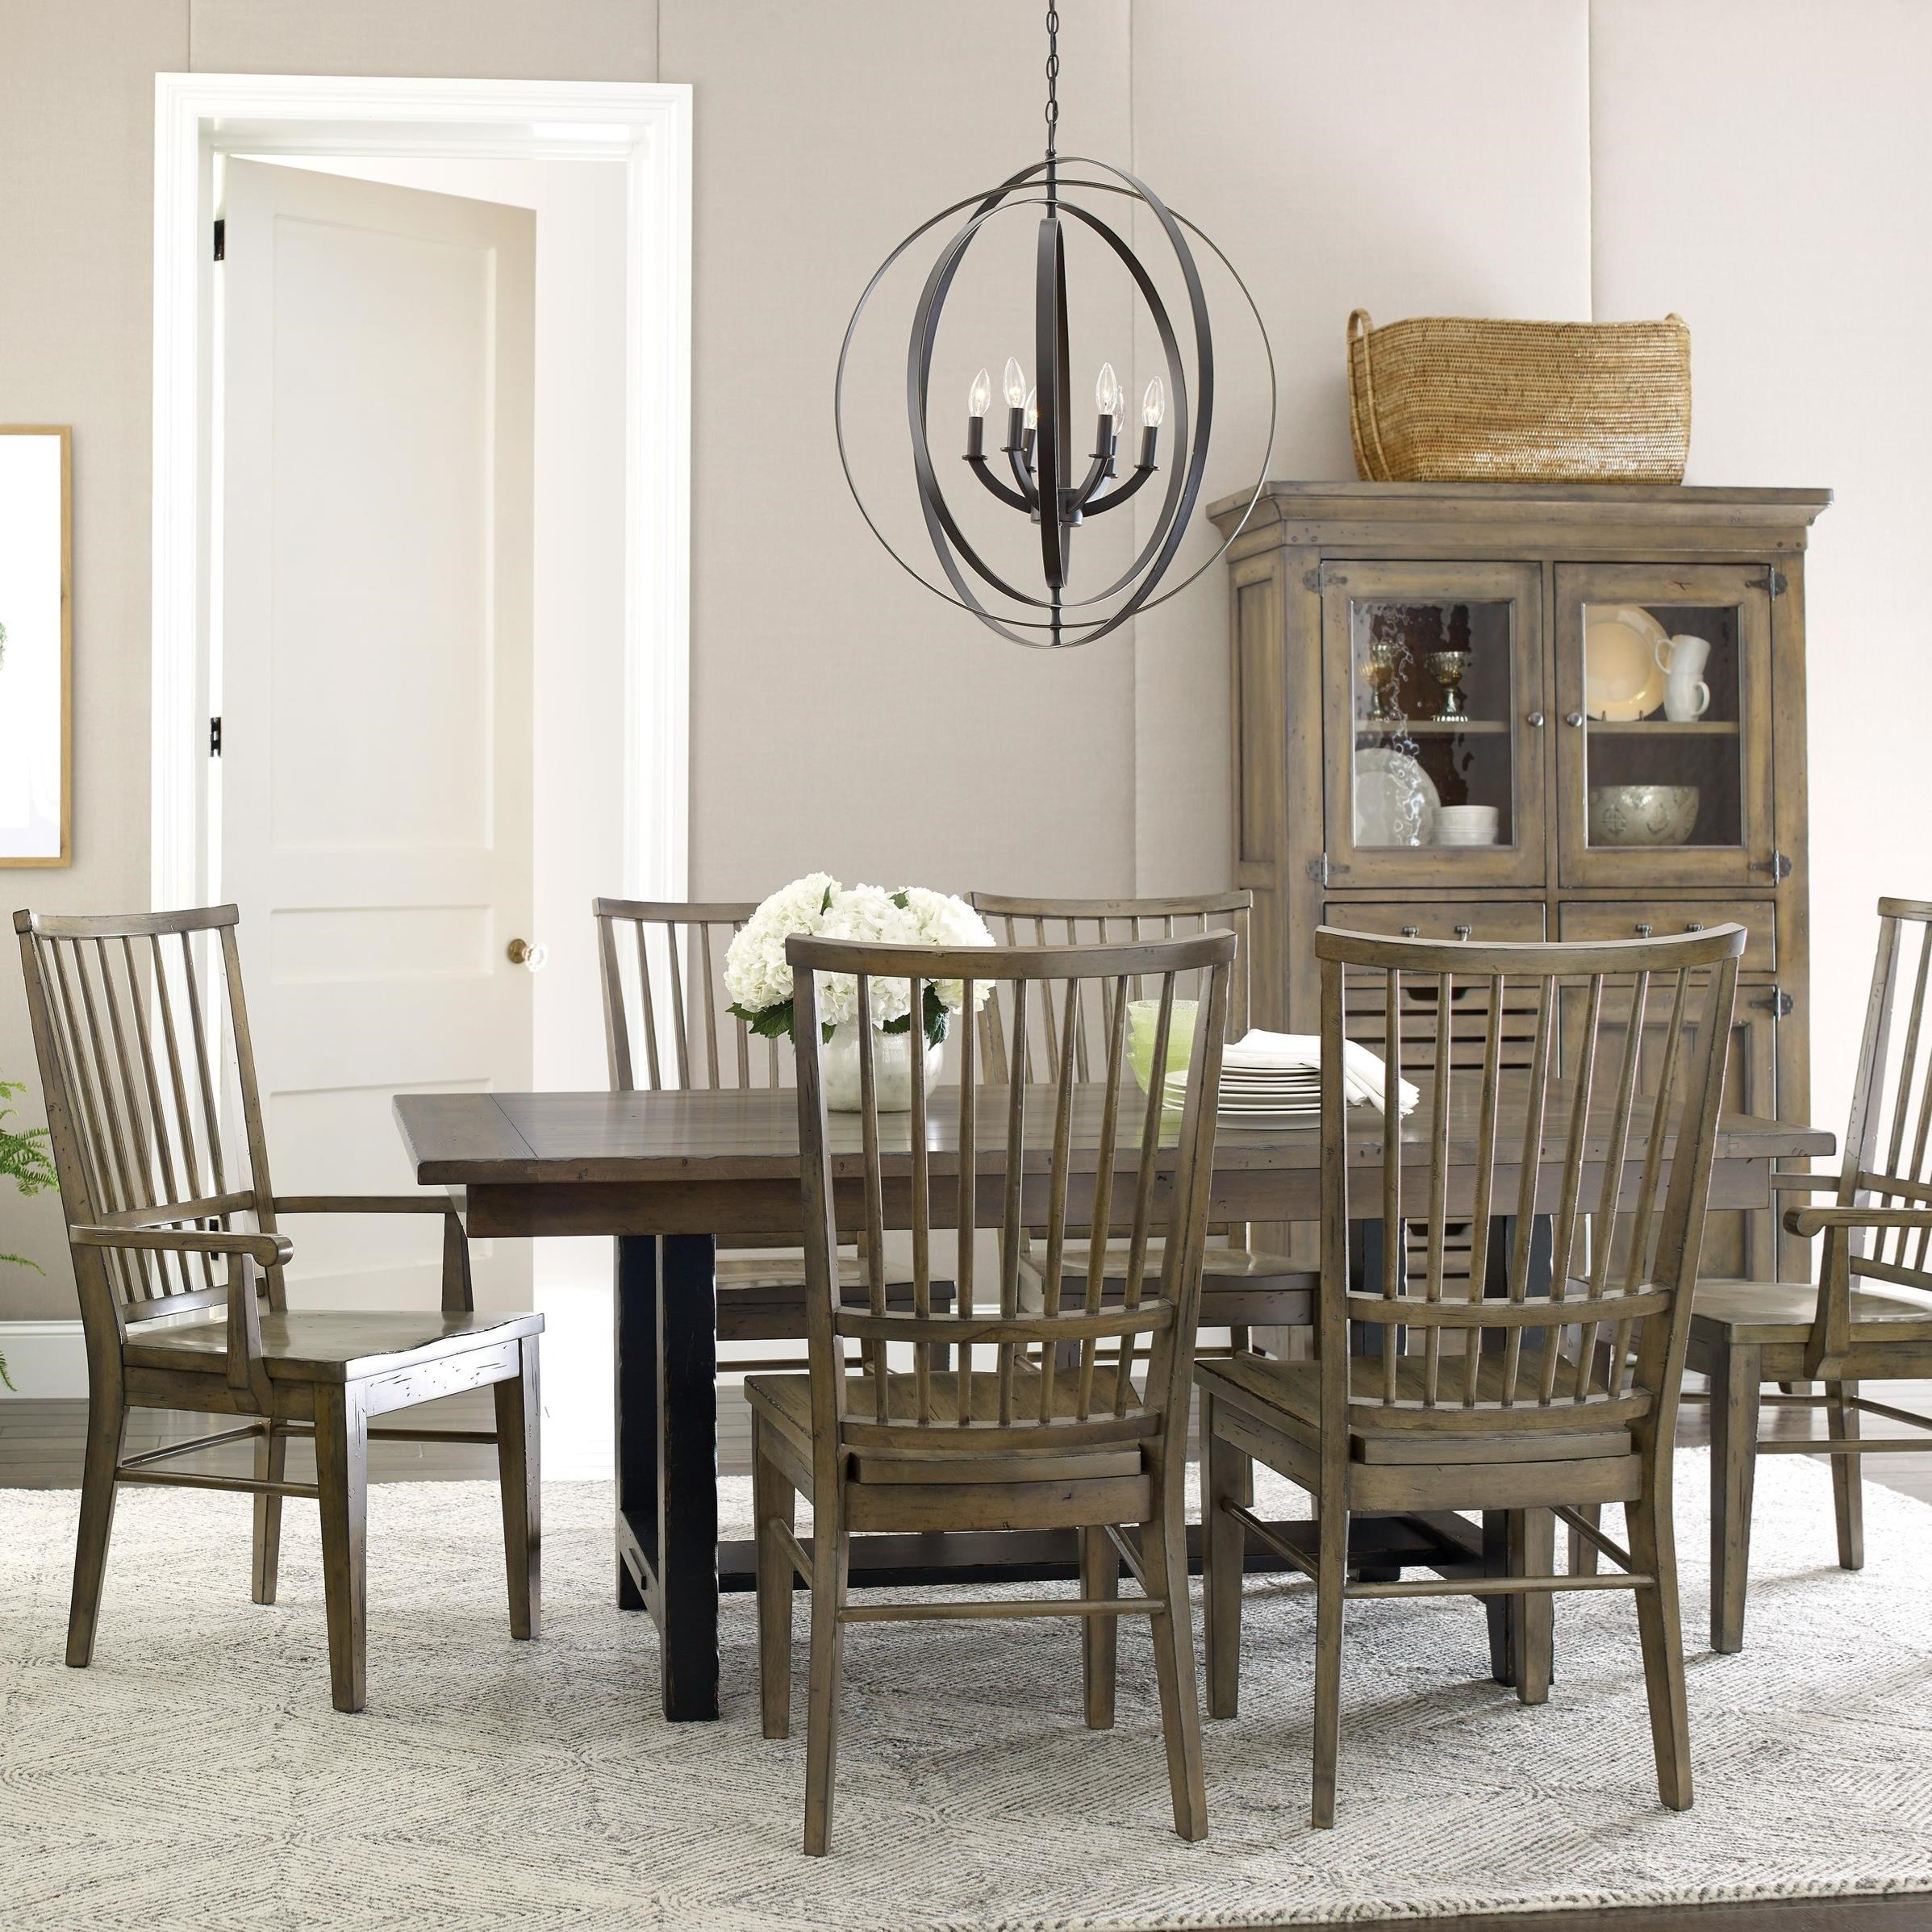 Mill House Dining Table Set with 6 Chairs by Kincaid Furniture at Northeast Factory Direct